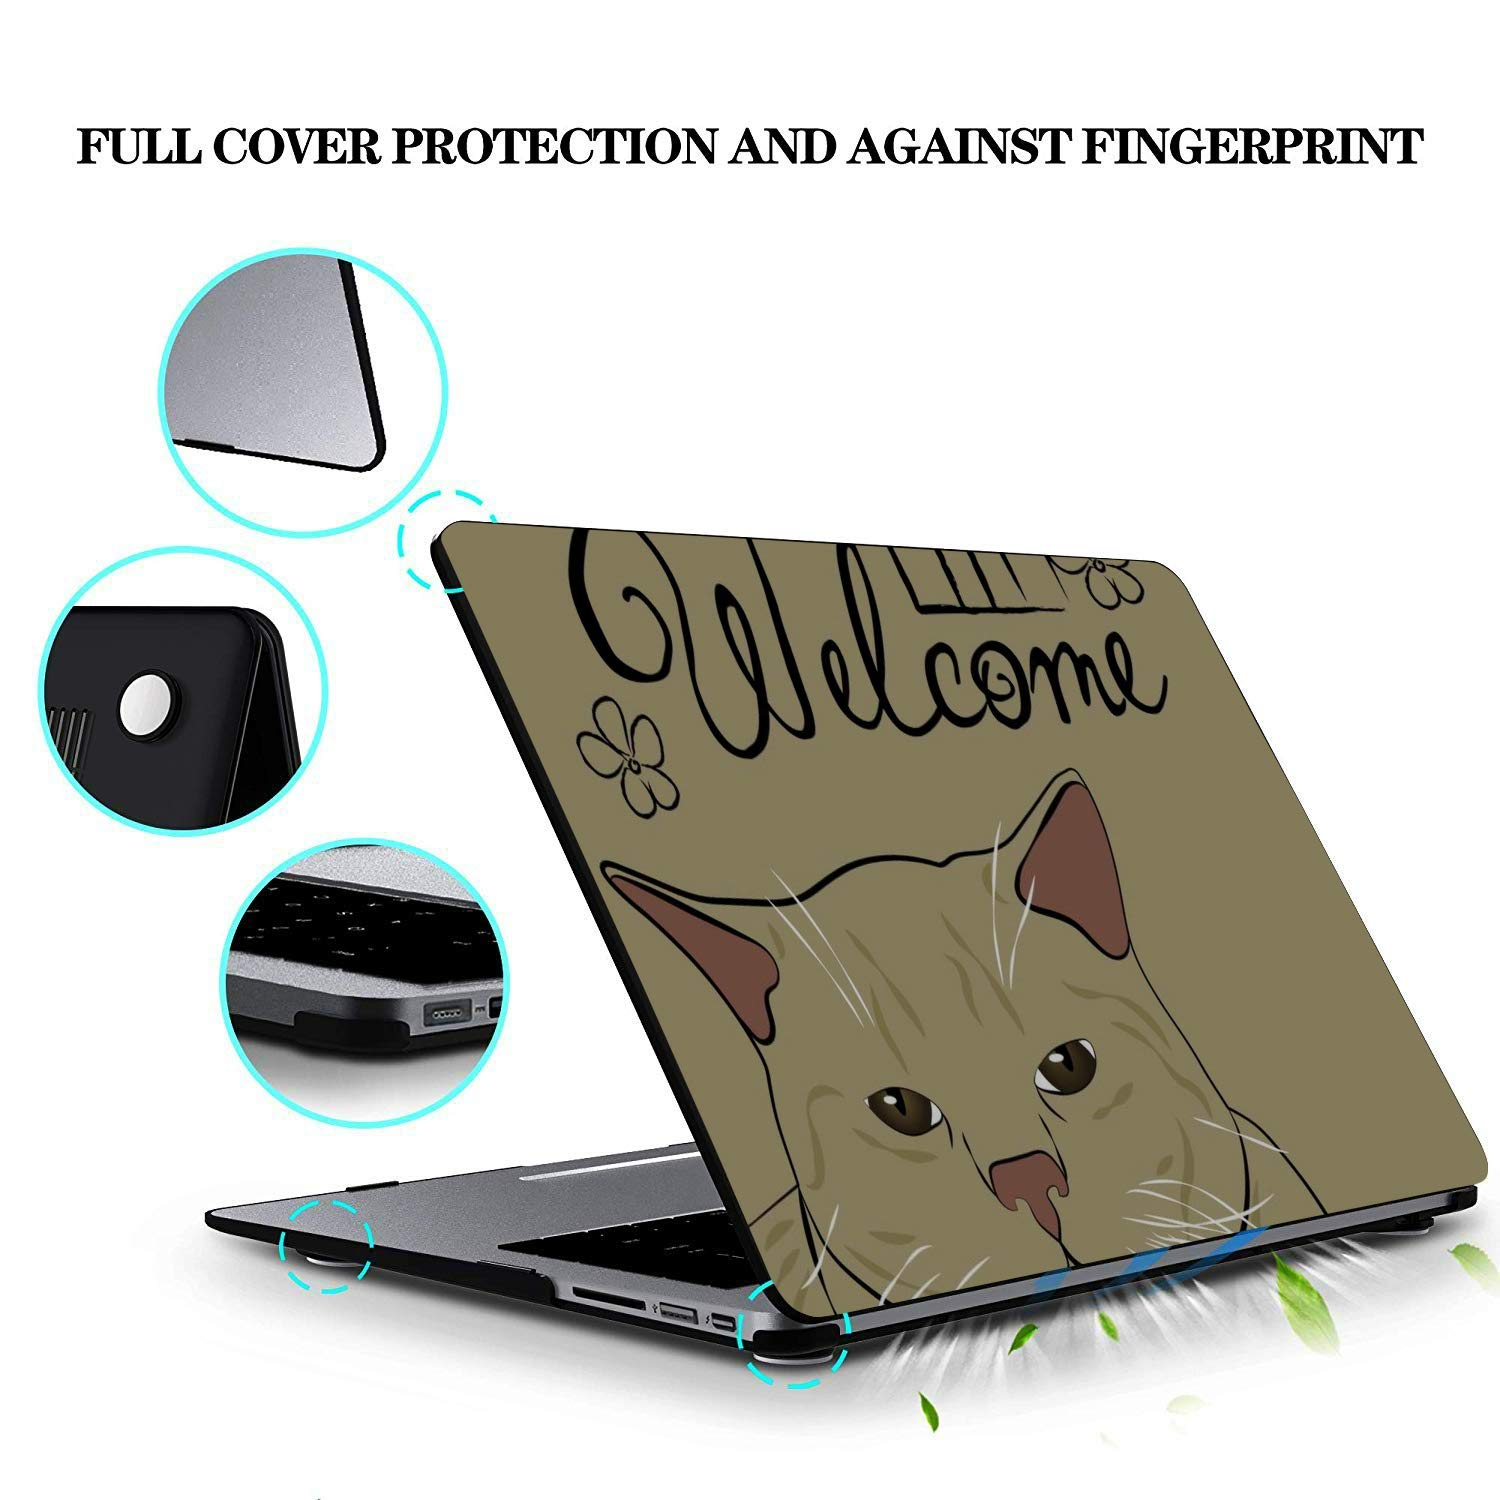 15 Inch Laptop Case Cartoon Cute Cat with English Words Plastic Hard Shell Compatible Mac Air 11 Pro 13 15 MacBook Laptop Cover Protection for MacBook 2016-2019 Version